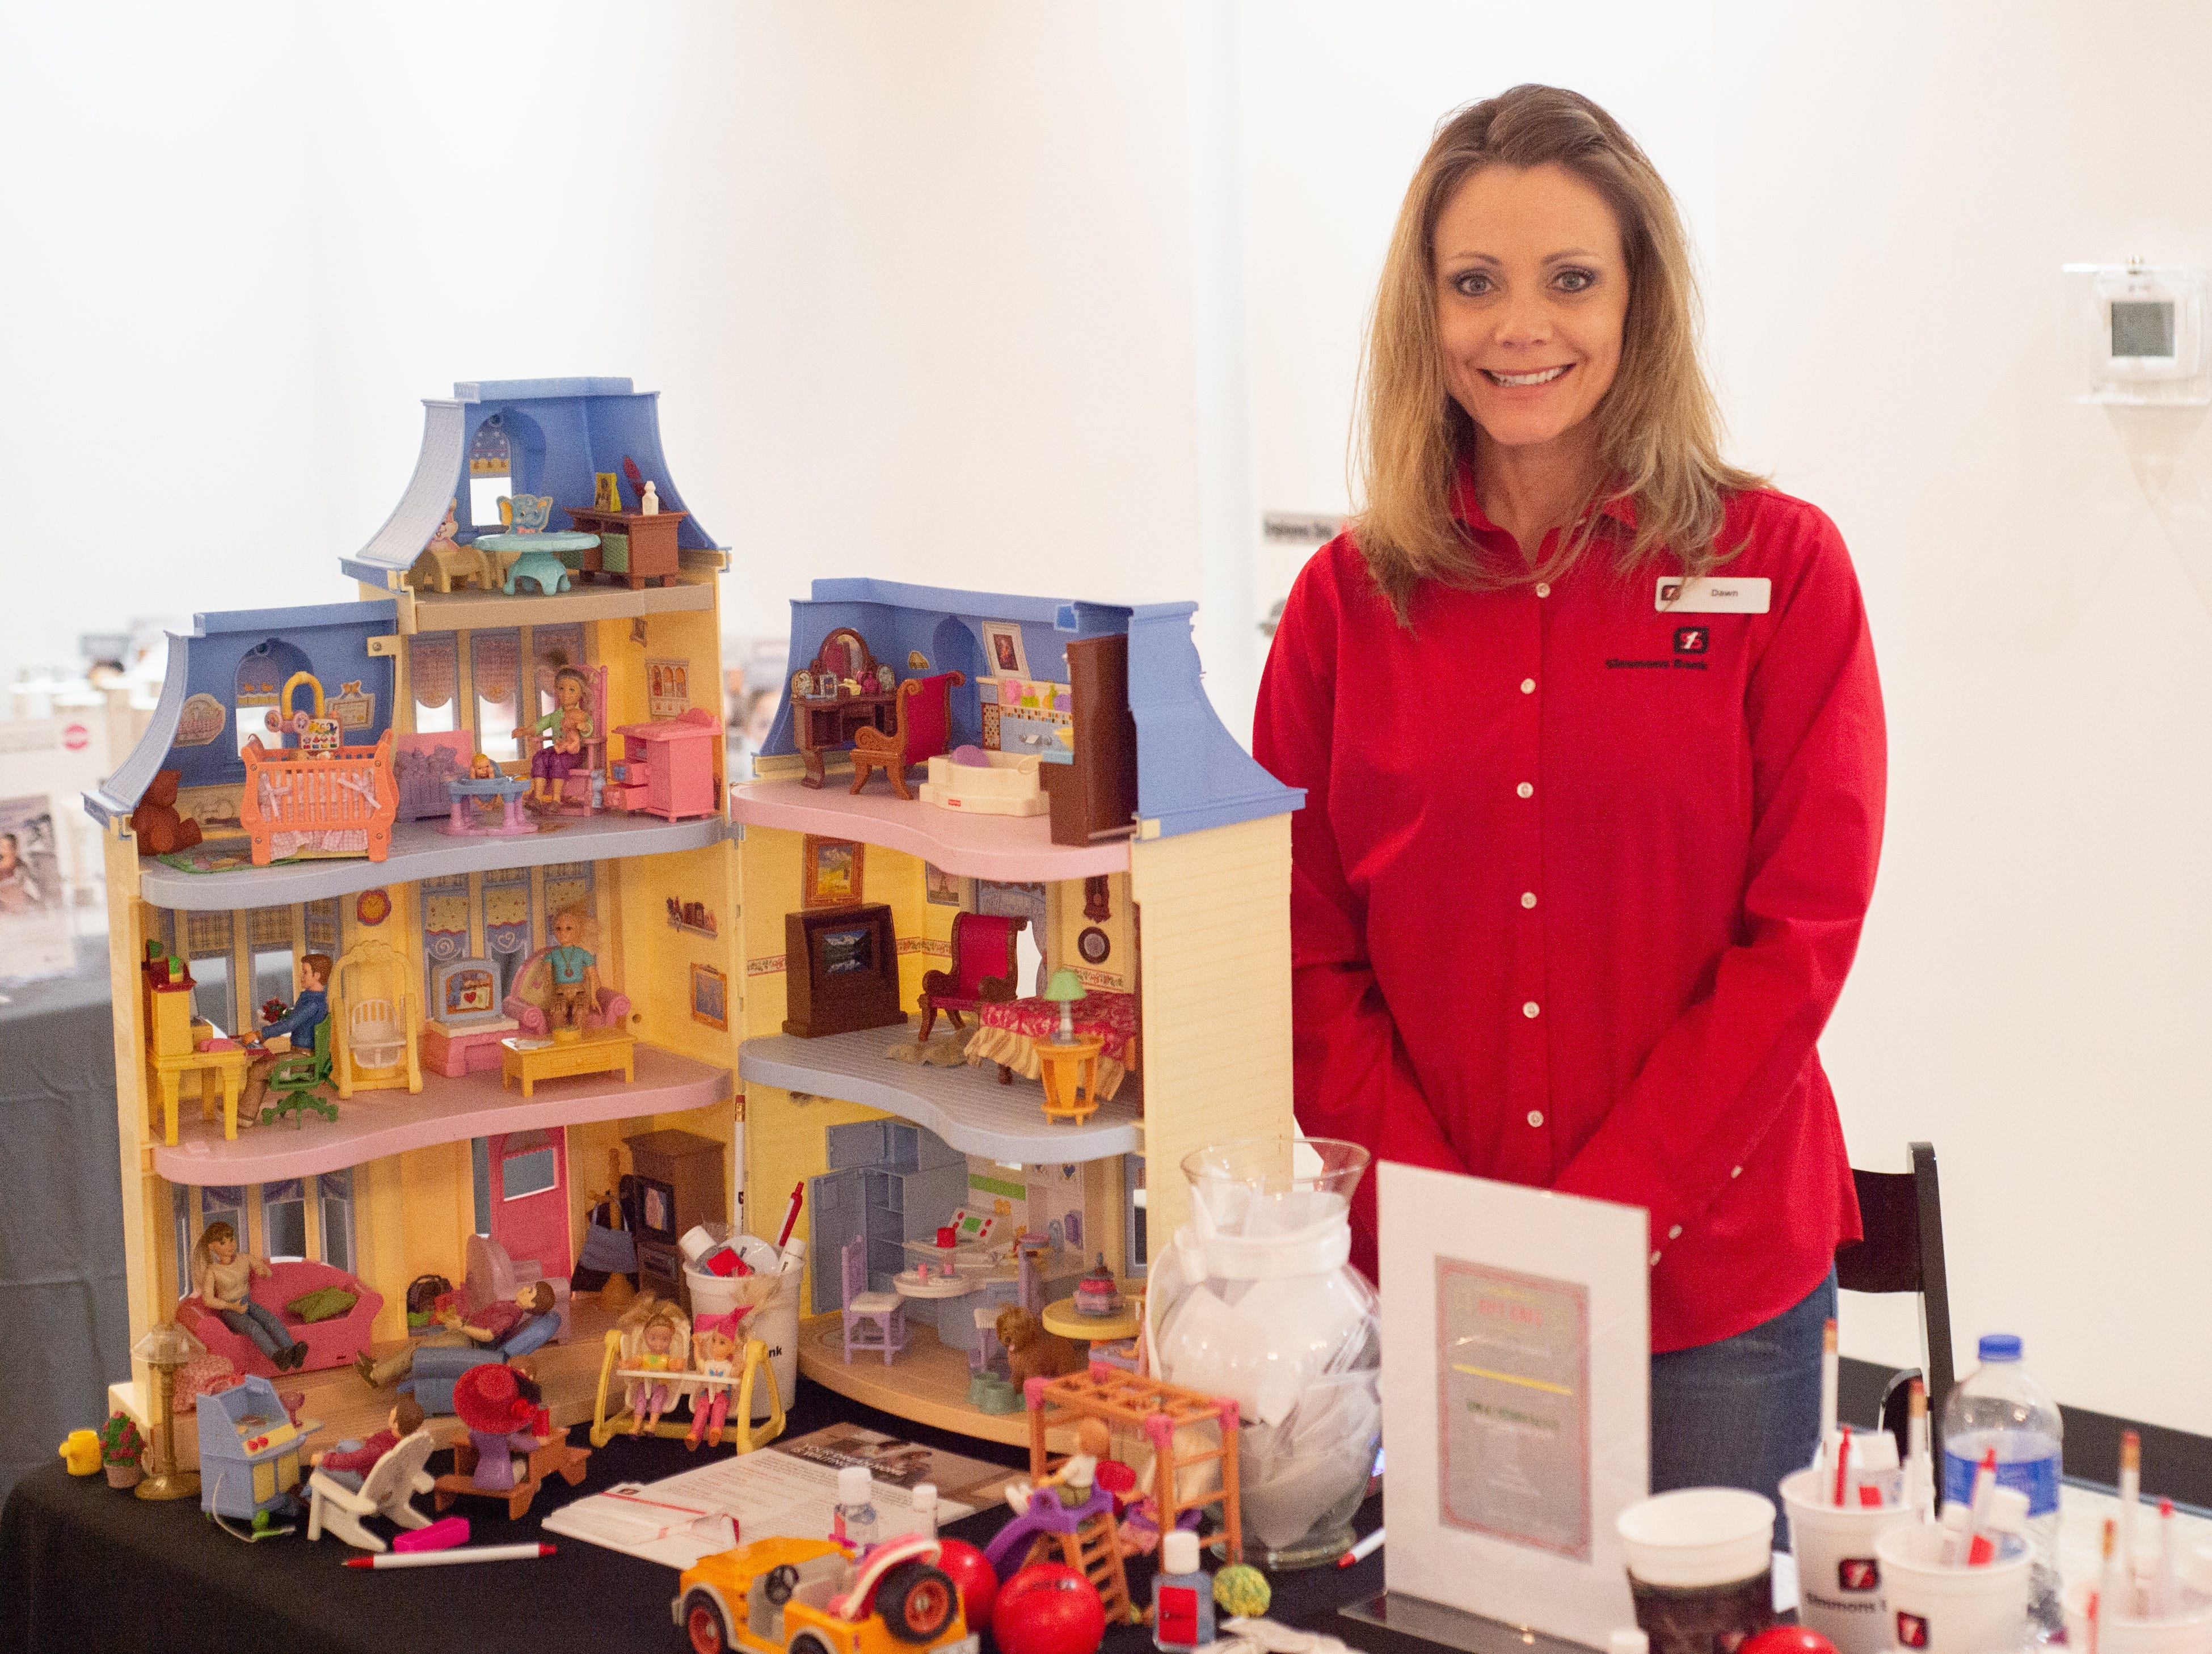 Dawn Harrison helps out with the Sumner County Bridal Show at Epic Event Center in Gallatin on Sunday, Jan. 27. The event was presented by the Gallatin Chamber of Commerce and Epic Event Center.